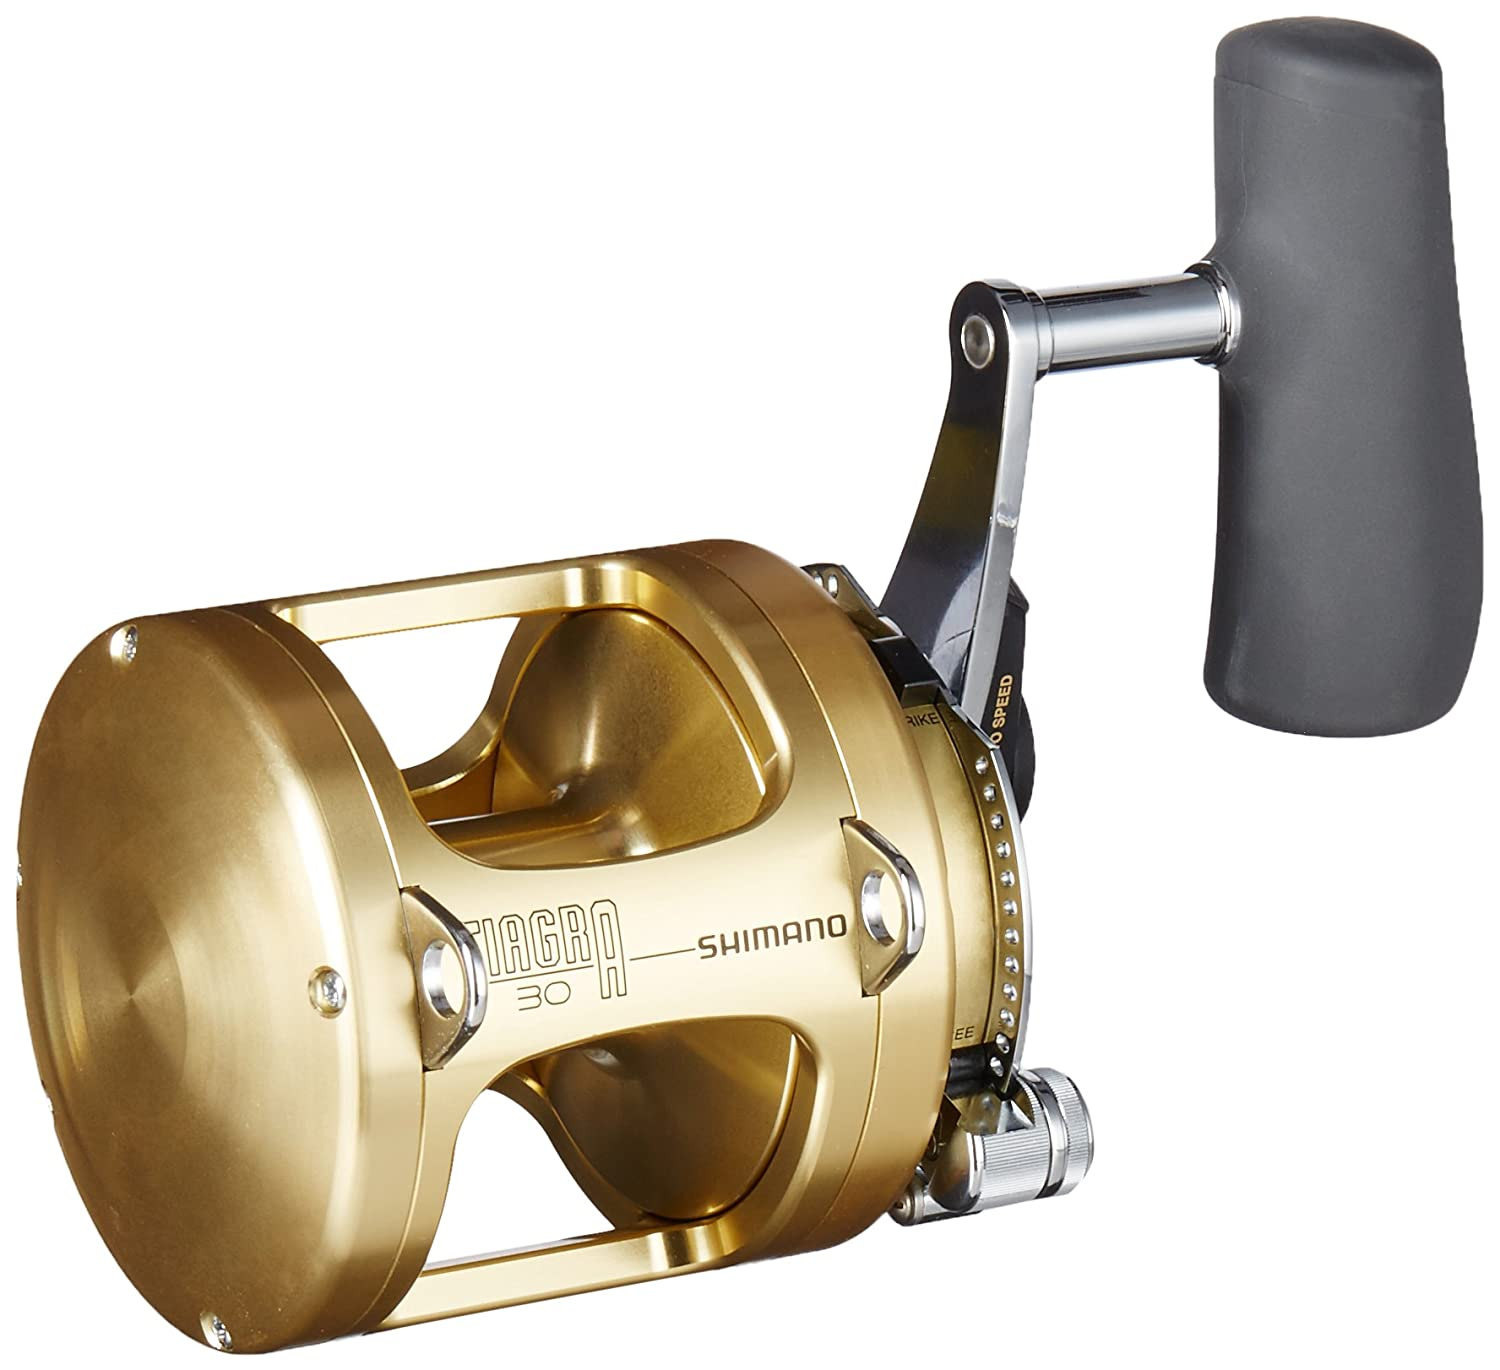 Shimano Tiagra 130 A 2 Speed Offshore Multiplier Seafishing Reel, TI130A